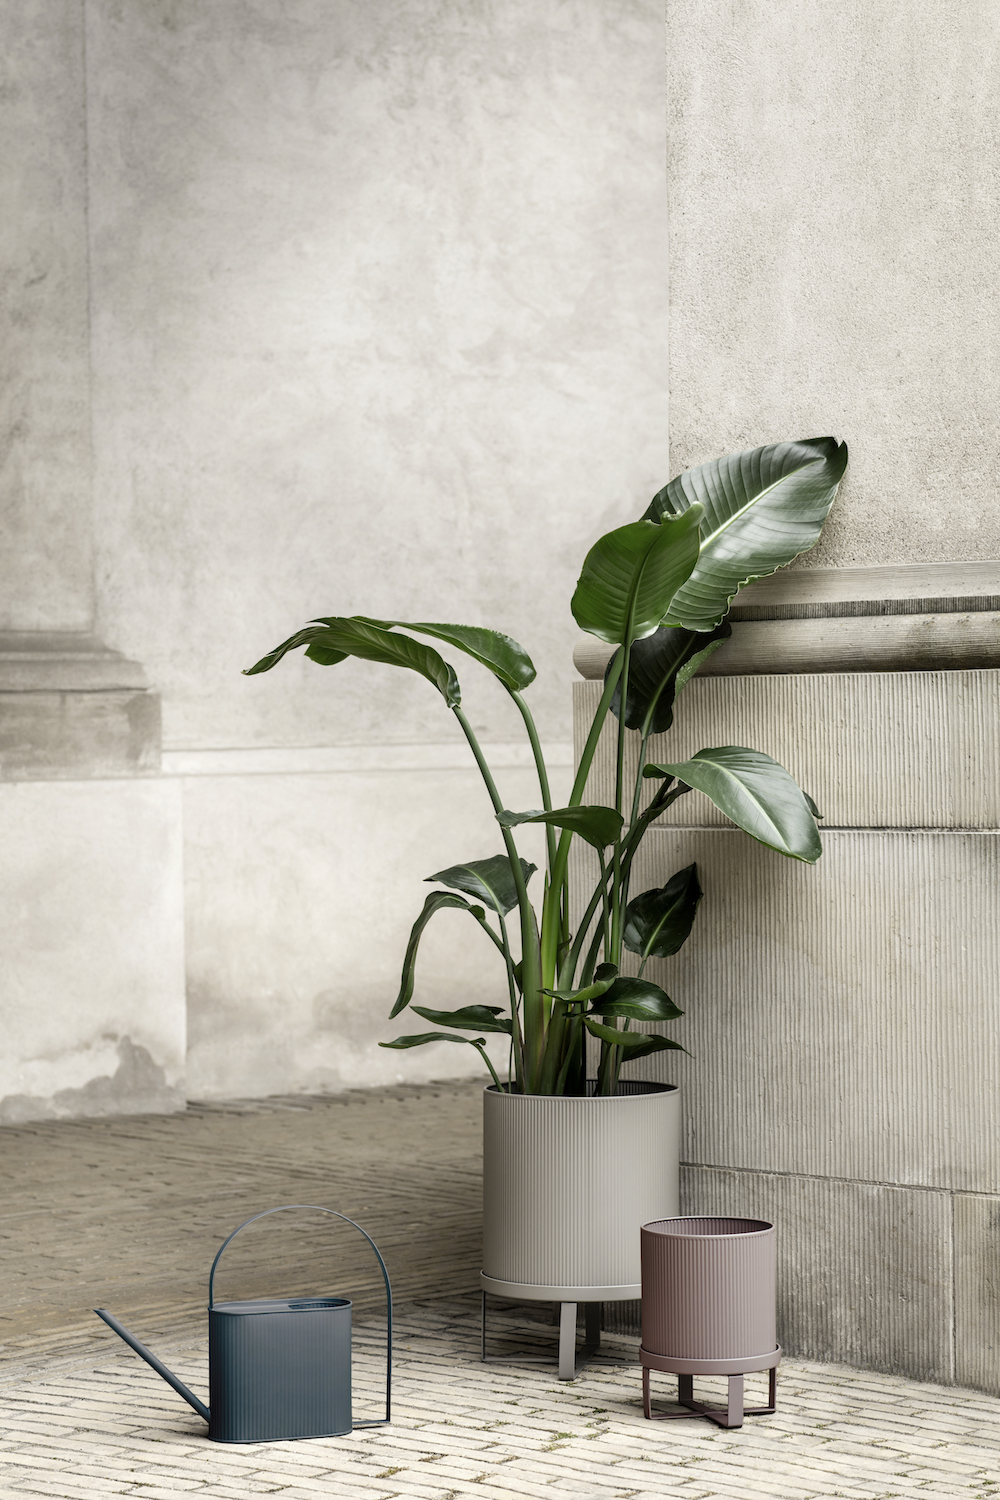 Keeping plants alive, we know, can be tricky. - Whilst greenery offers substantial visual appeal it's important to remember that plants are a living being, just like us, with life sources needed to survive.